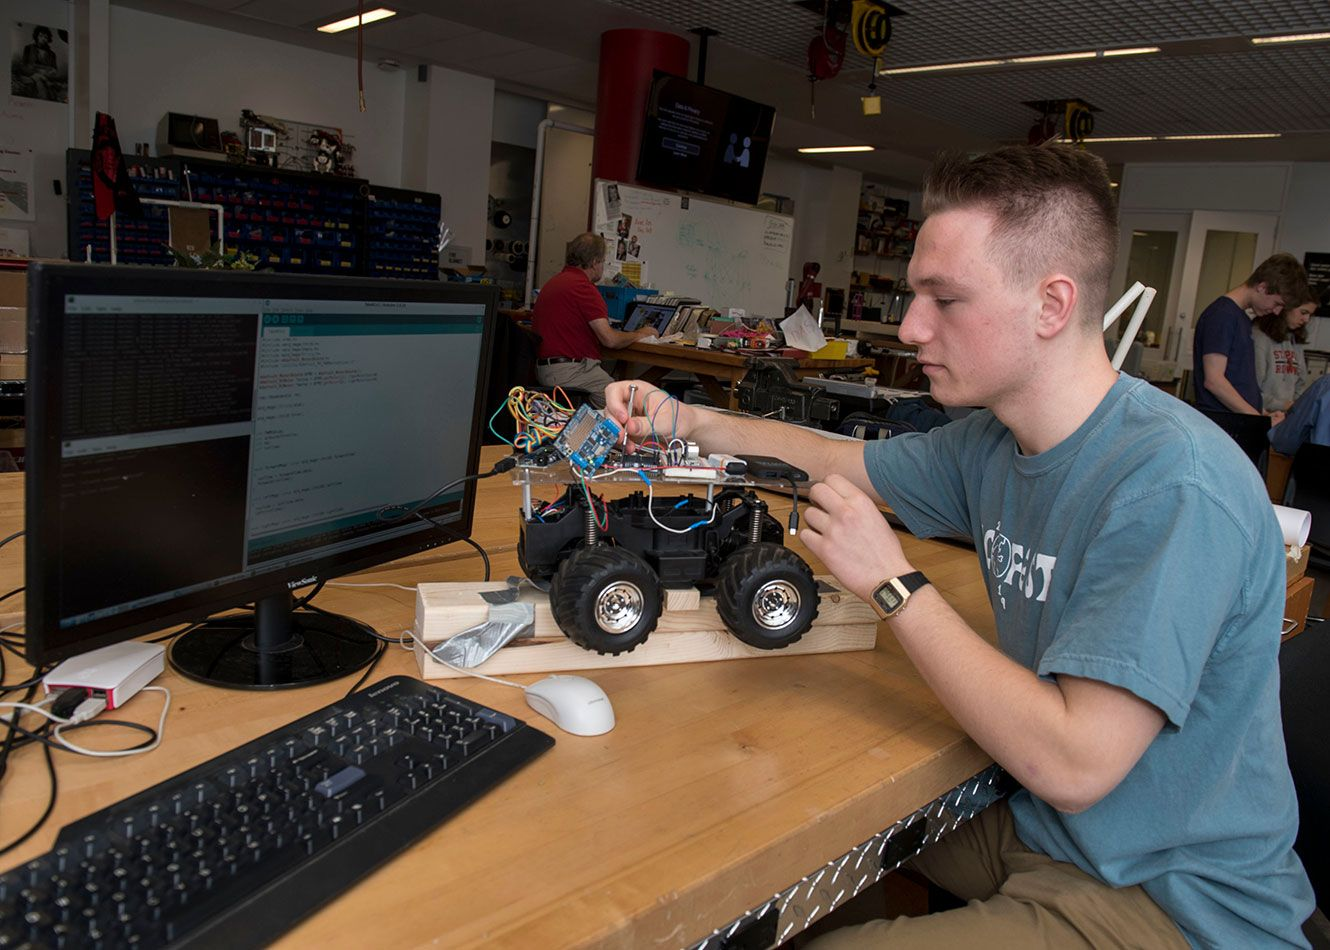 Students in this course work on studying and developing Autonomous Robotic Systems. The VEX Robotics Systems and the EasyC programming System are used to create simple, autonomous robots, and student progress to the FIRST RobotiArcs and Arduino Control systems to create more complex projects.